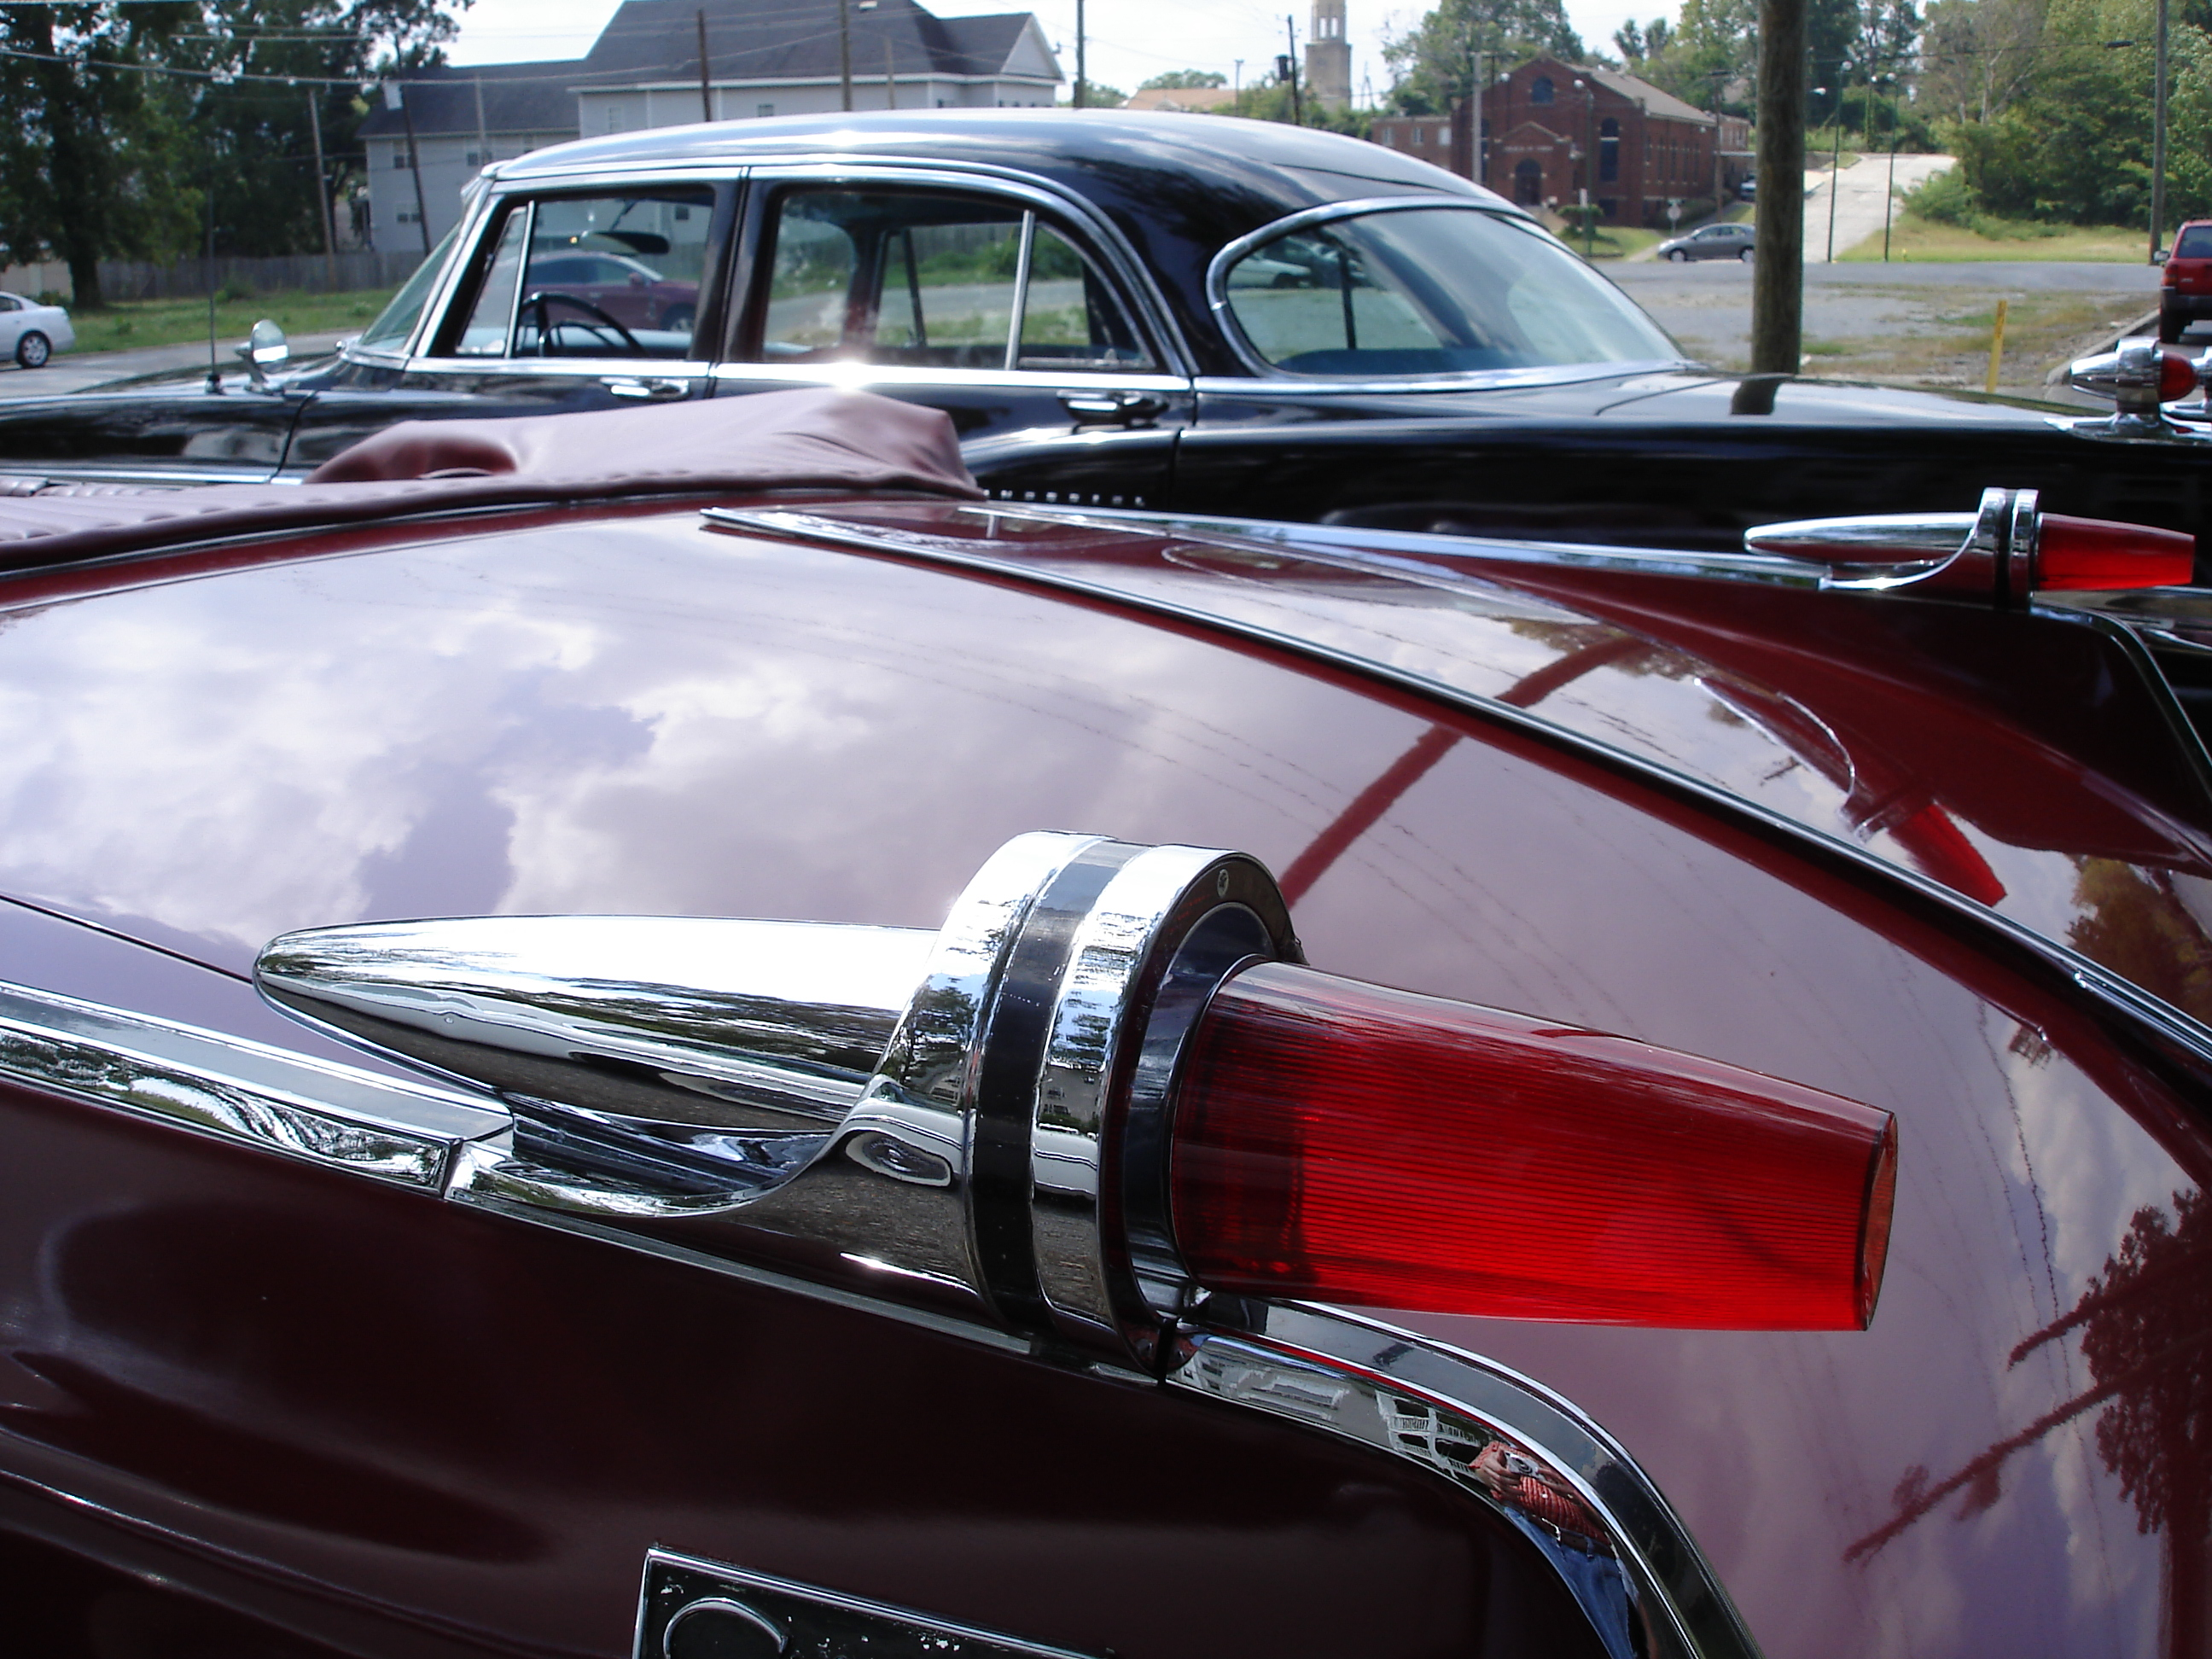 1956 chrysler imperial interior images - Car Show Classic 1956 Imperial Southampton 2 Door Hardtop Stunning In Pink